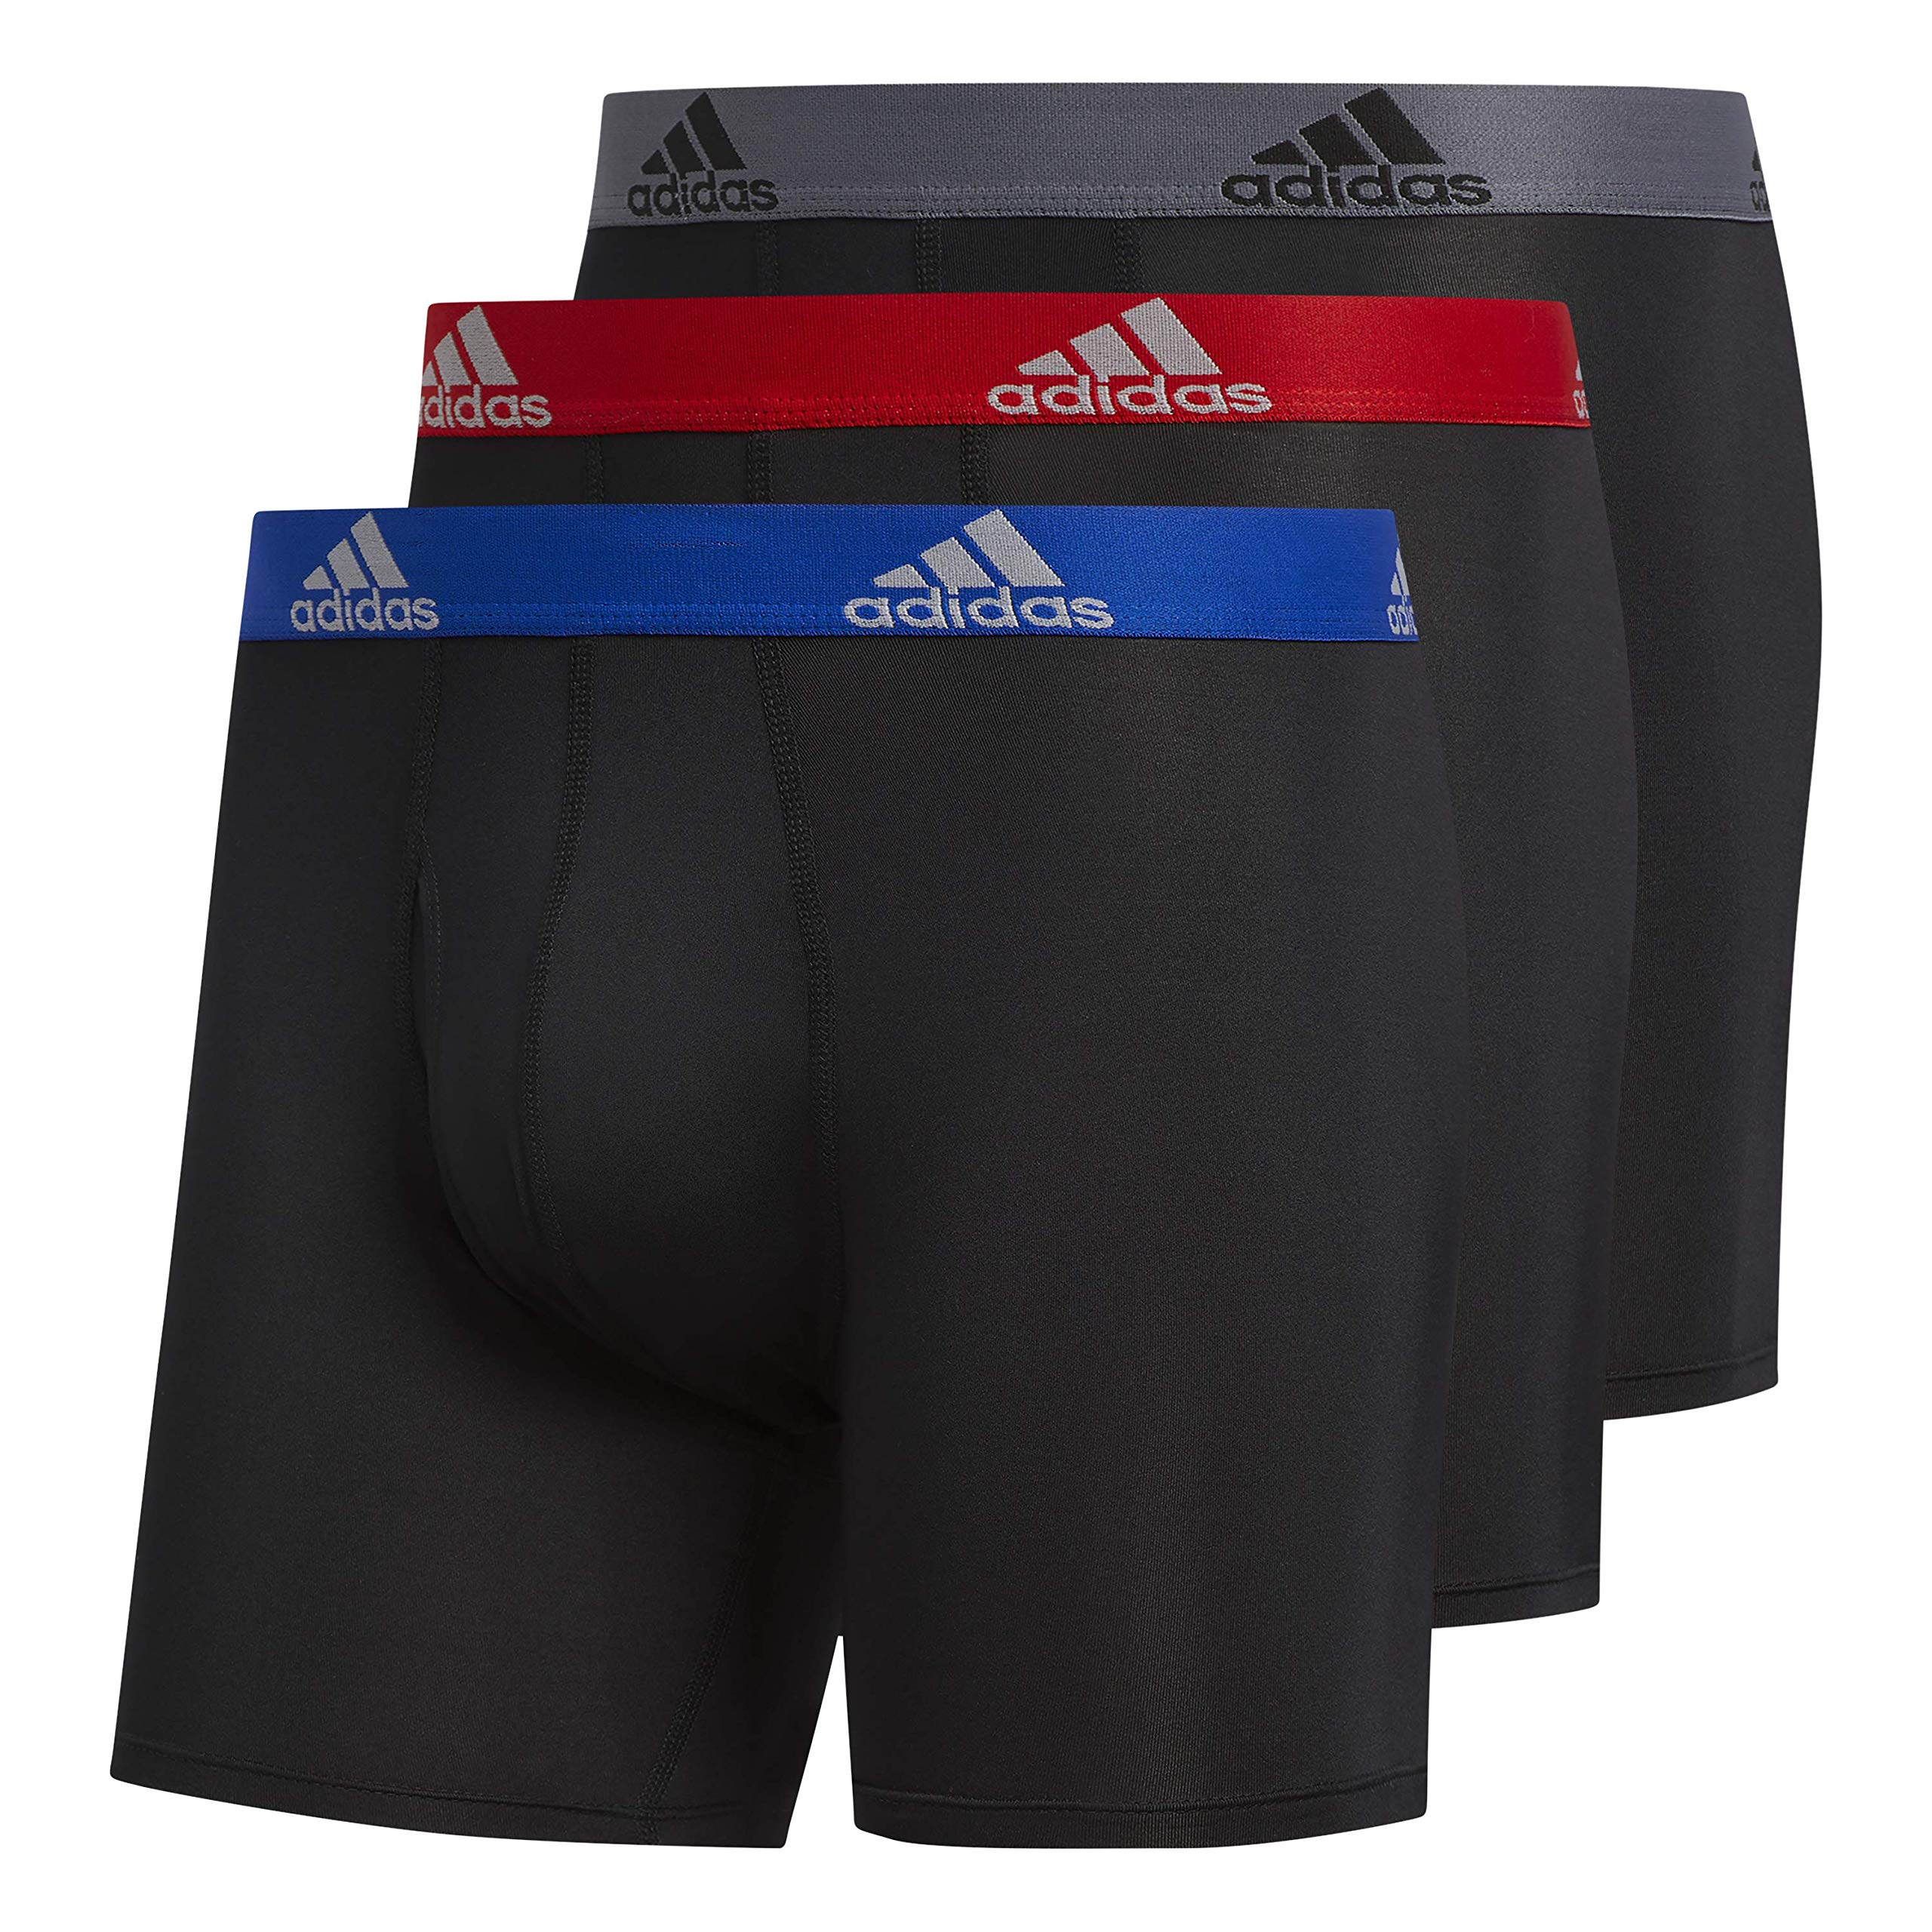 adidas Climalite Boxer Briefs Underwear (3-pack), Black/Collegiate Royal | Black/Scarlet | Black/Onix, 4X-Large by adidas